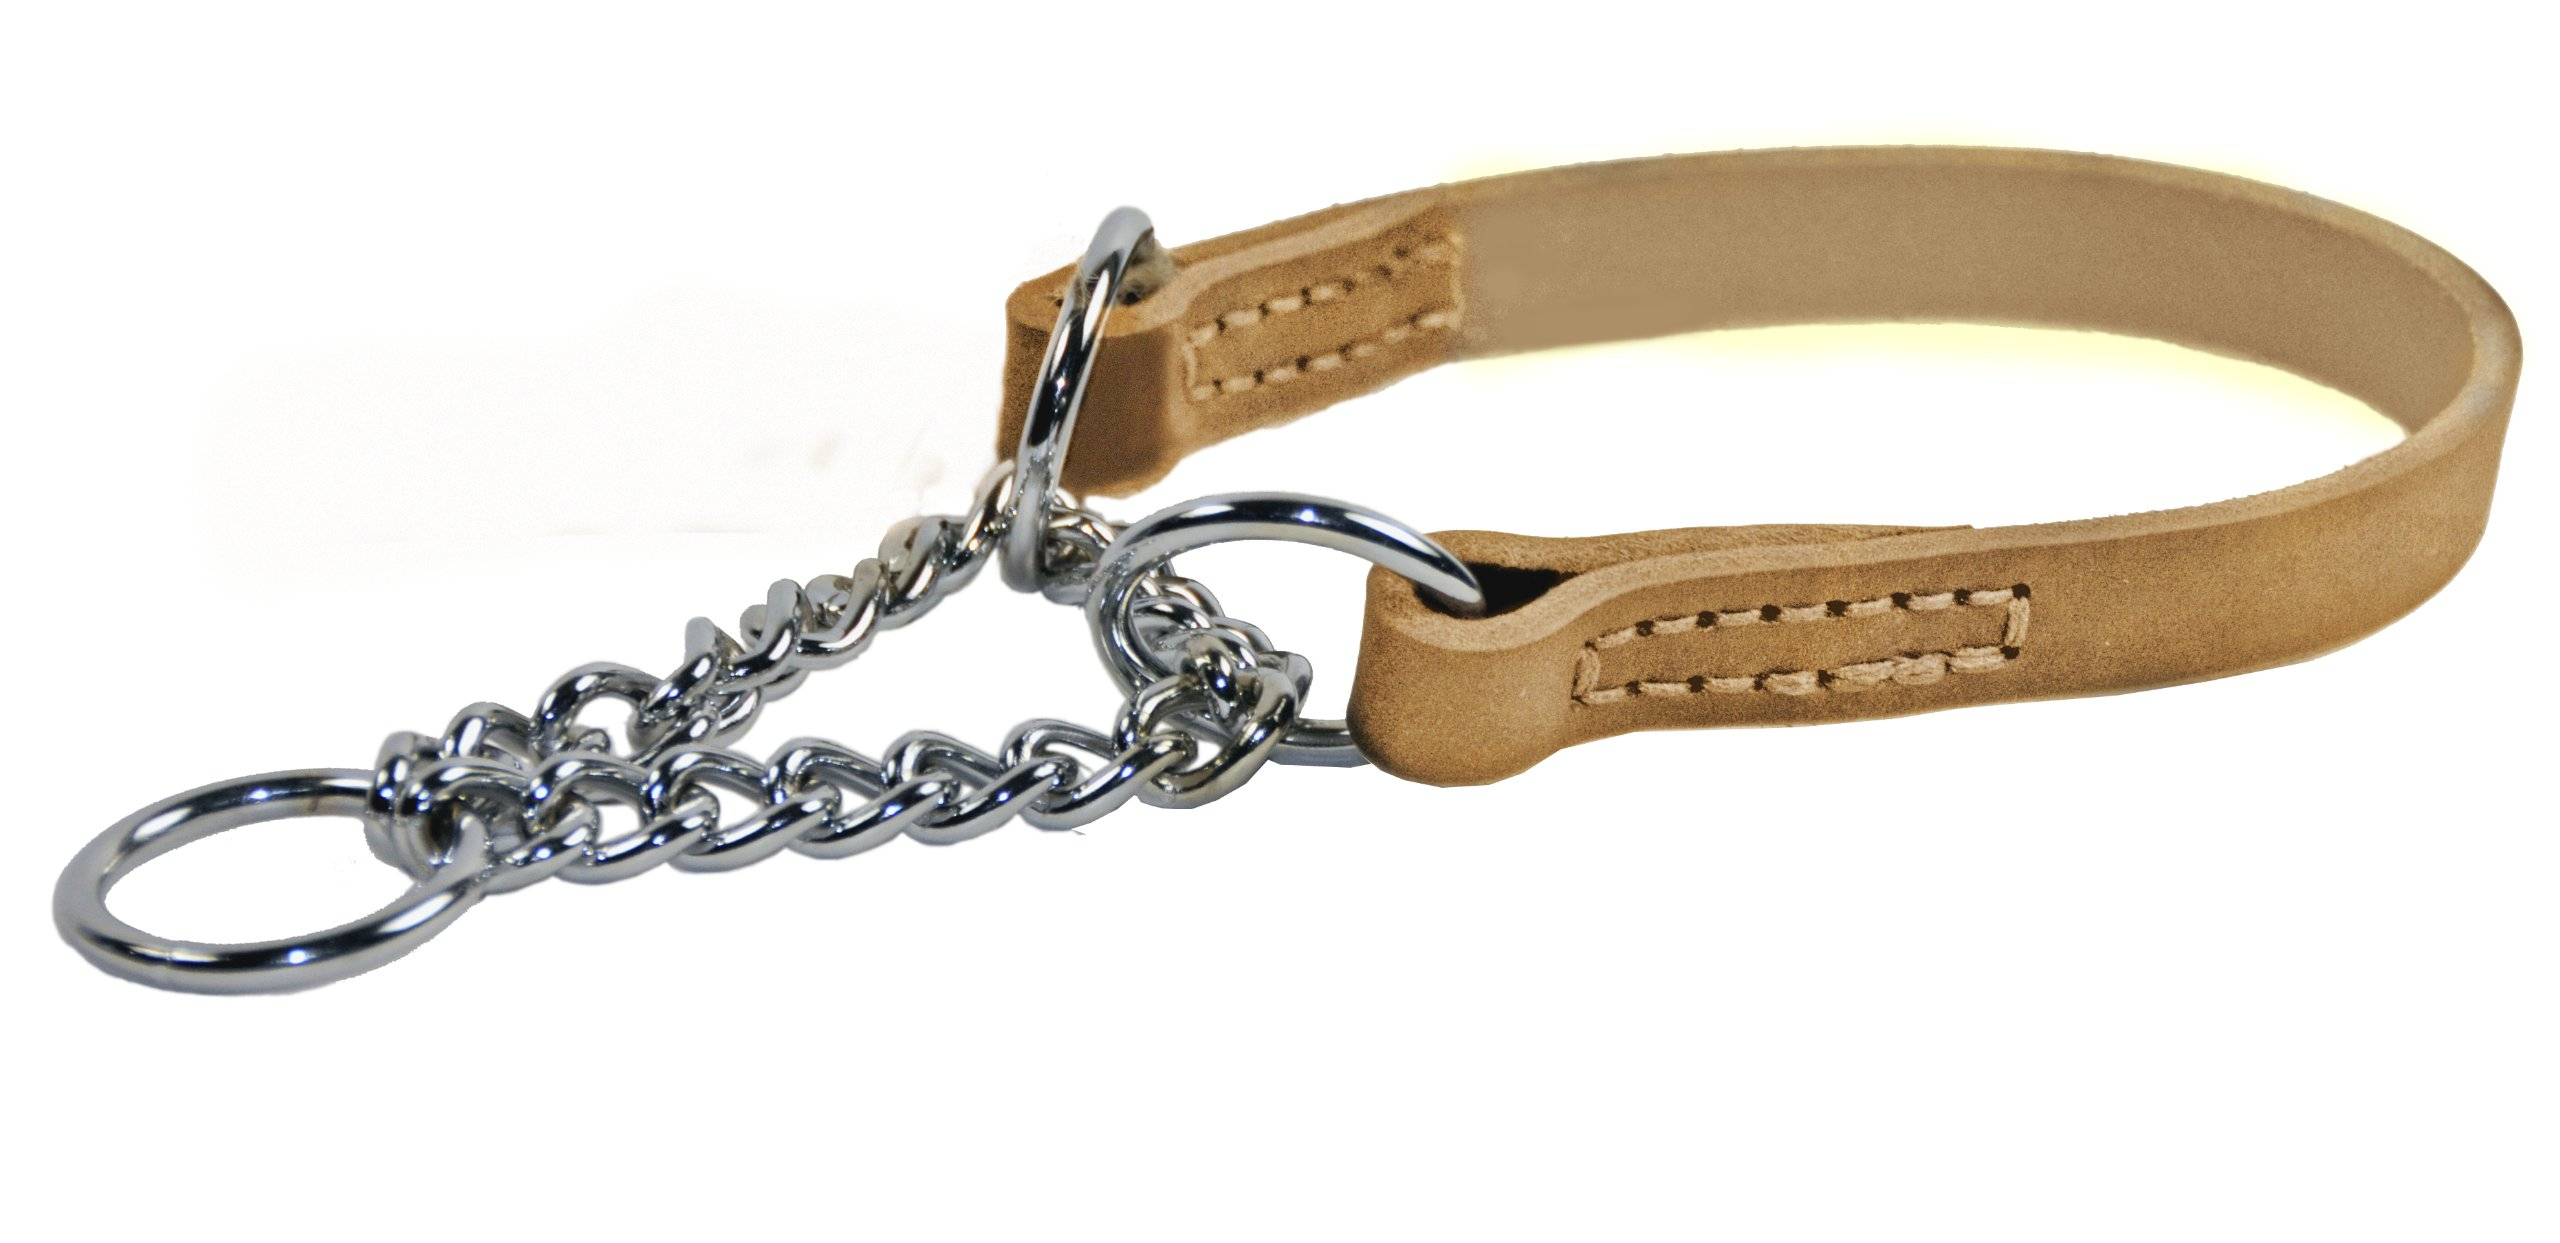 Dean and Tyler ''LEATHER MARTINGALE'', Dog Choke Collar with Chrome Plated Steel Chain - Tan - Size 28-Inch by 3/4-Inch - Fits Neck 26-Inch to 28-Inch